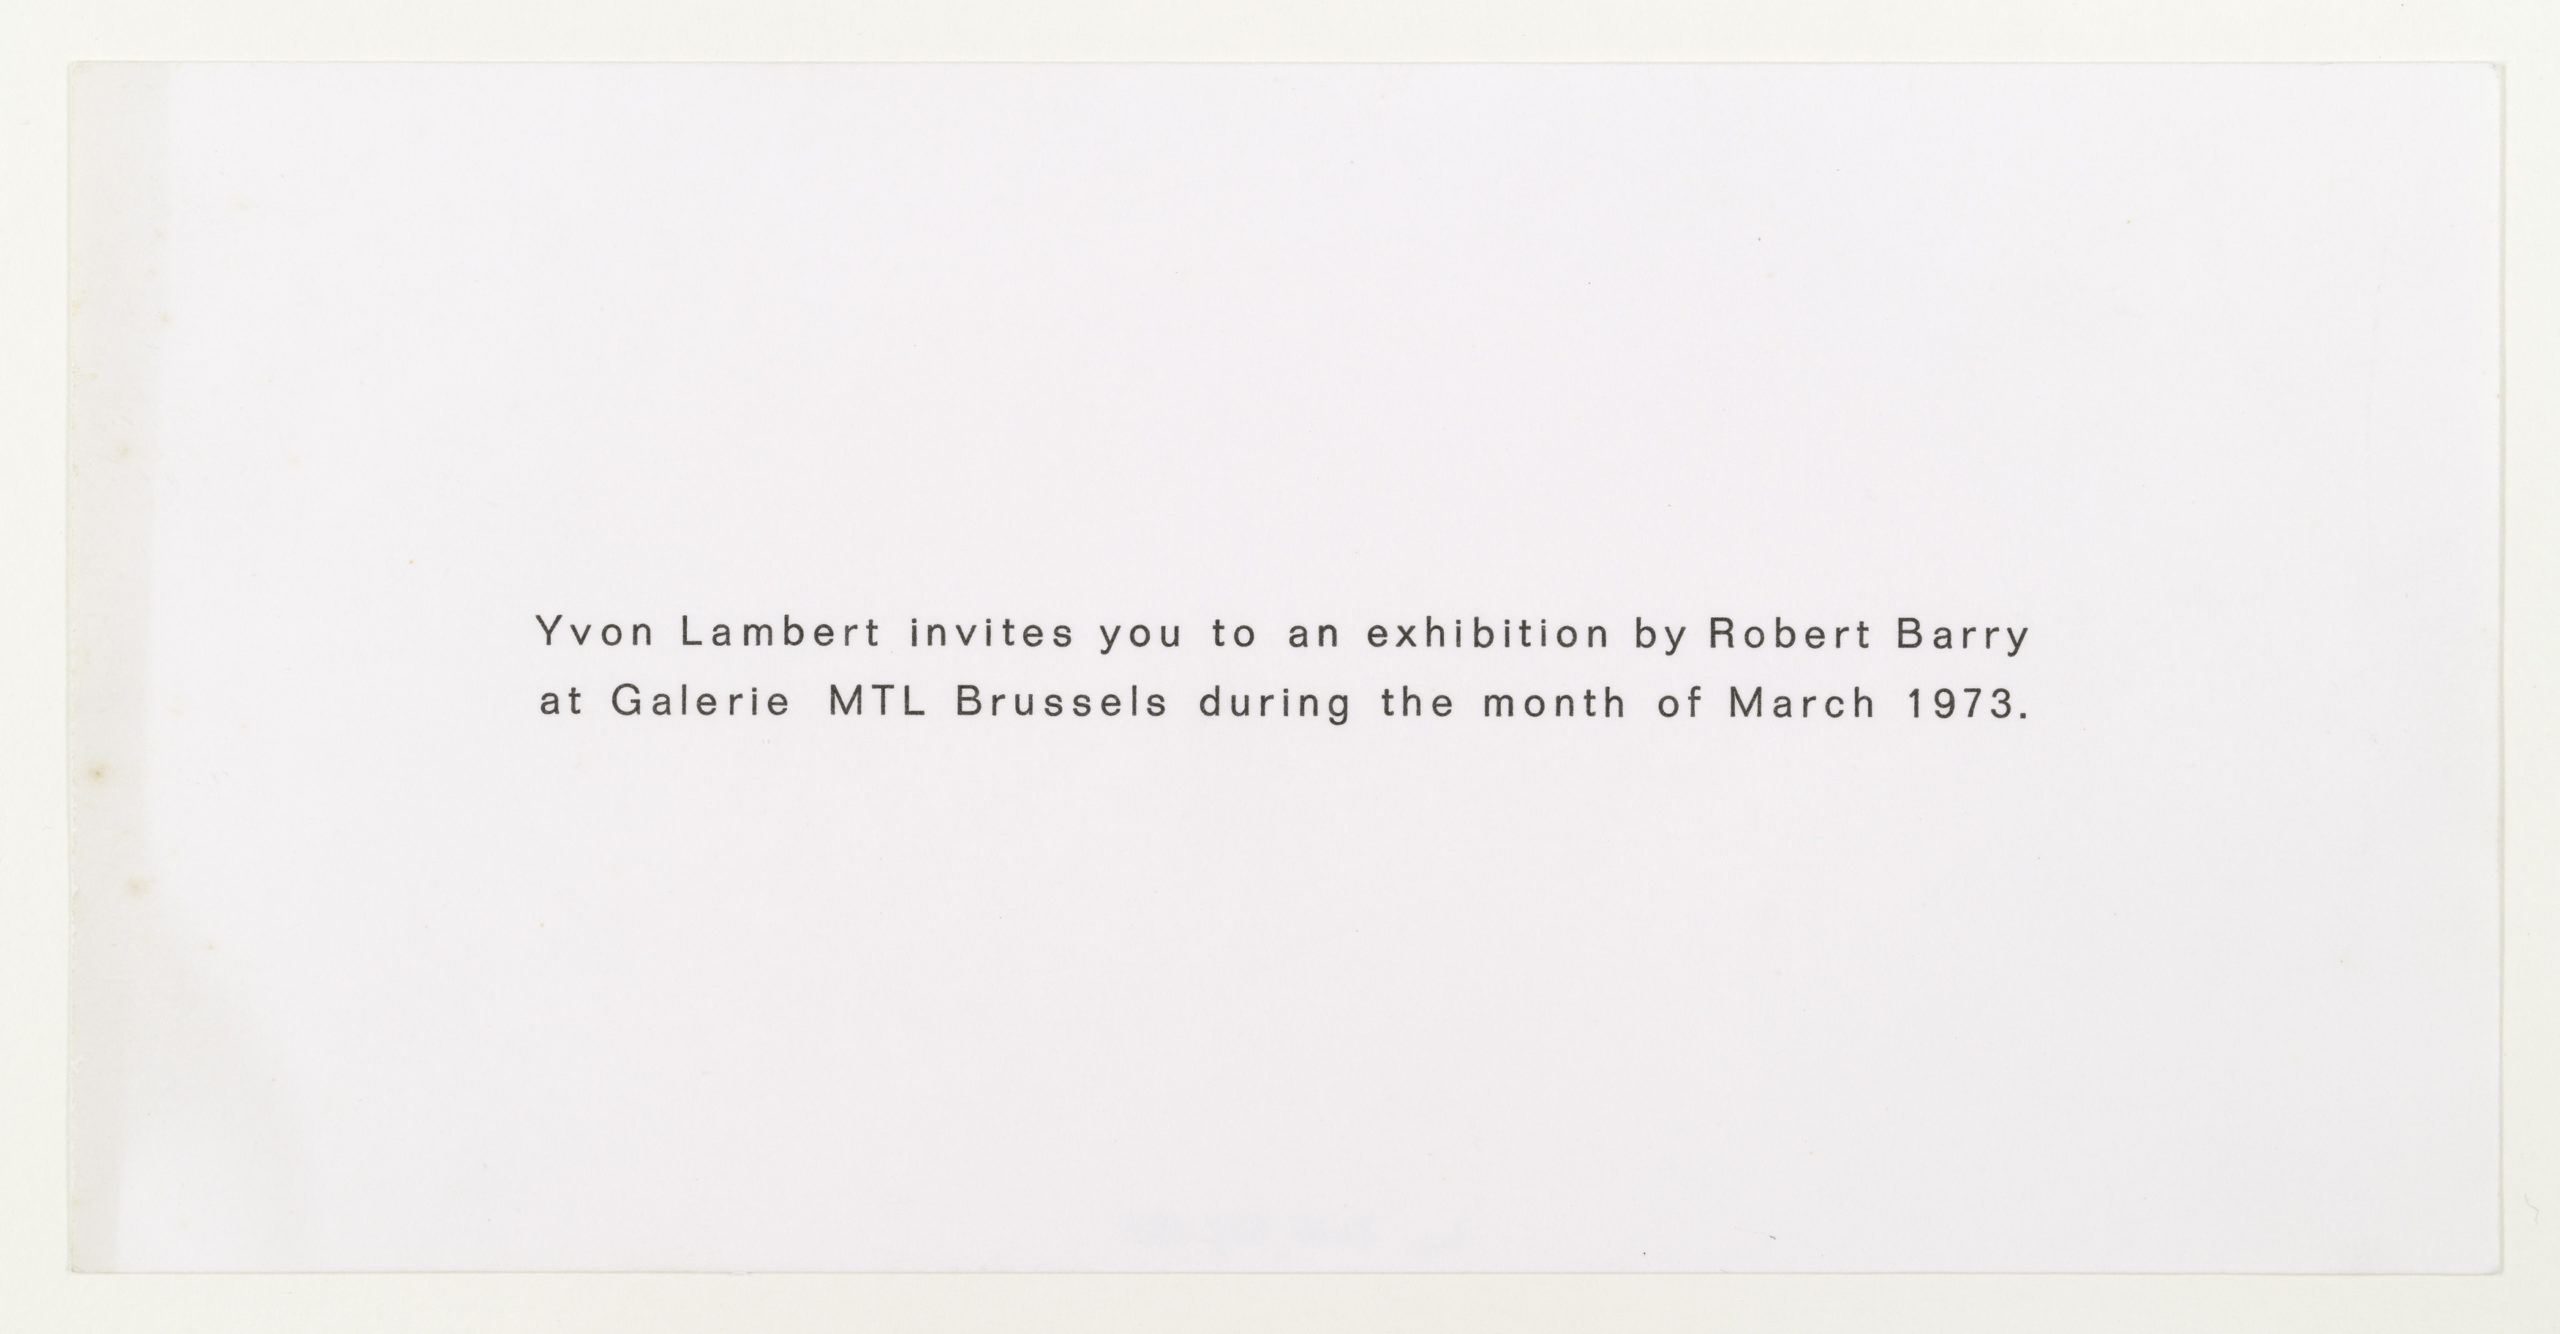 Robert Barry, Invitation Project, Yvon Lambert, Paris invites to MTL Brussels, March 1973 (Invitation); Sammlung Marzona, Kunstbibliothek – Staatliche Museen zu Berlin